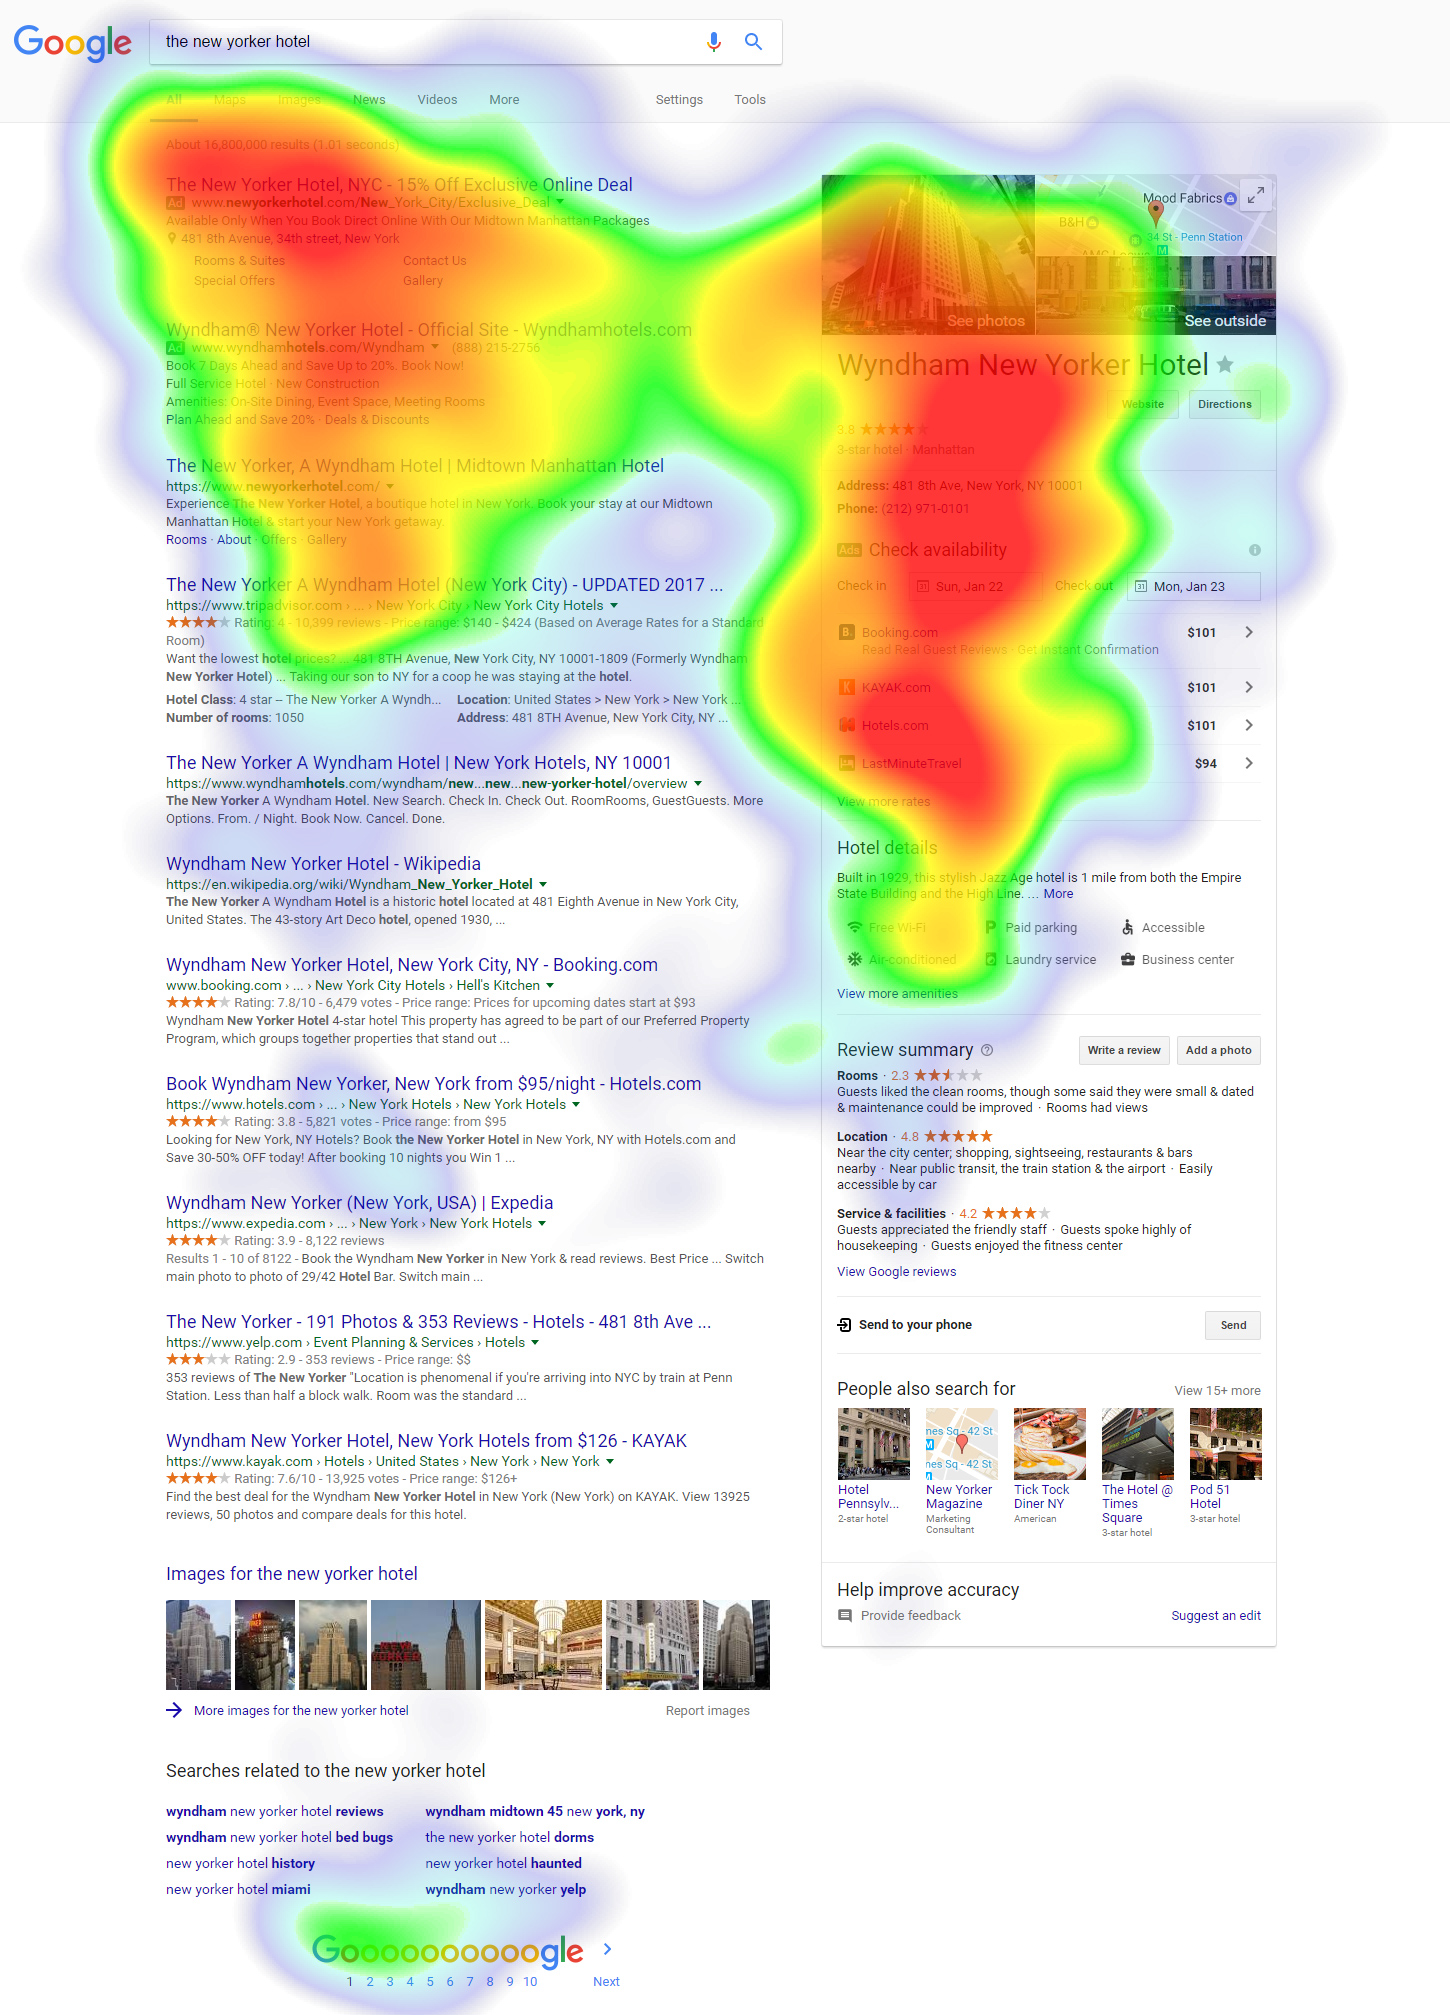 The New Yorker Hotel Heat Map. Source: Travel Tripper.